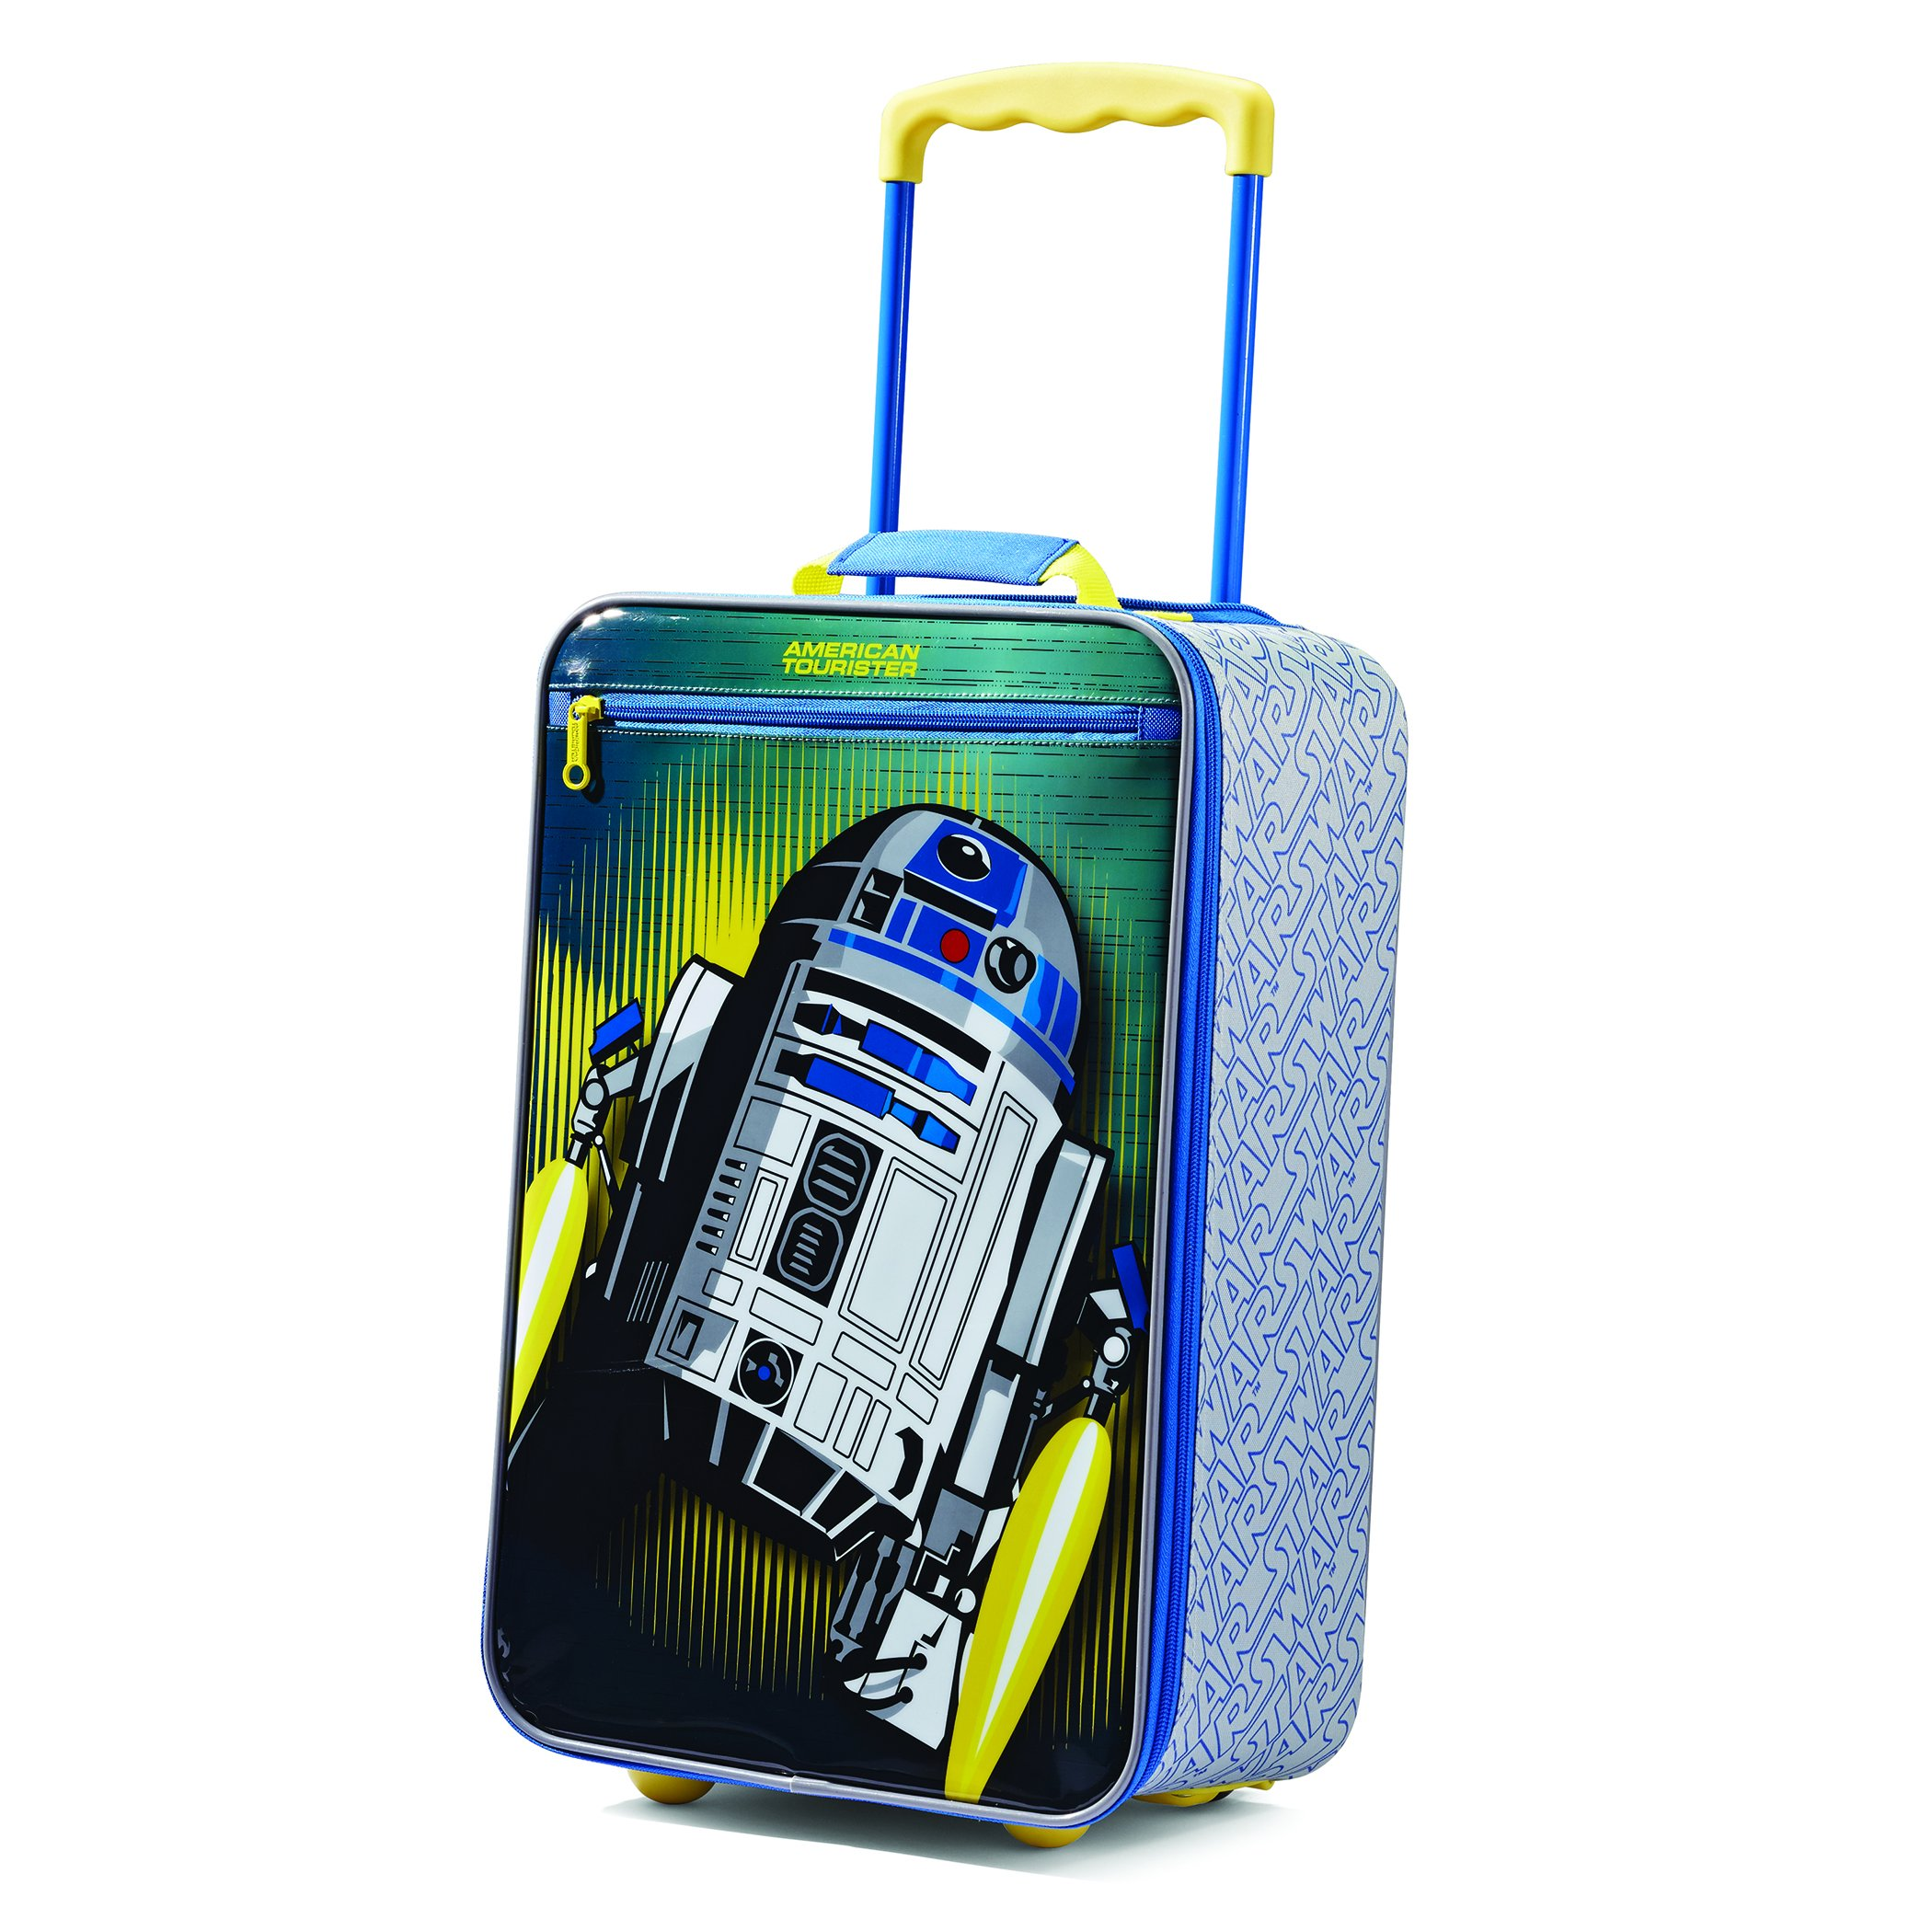 American Tourister Disney 18 Inch Upright Soft Side, Star Wars/Multi